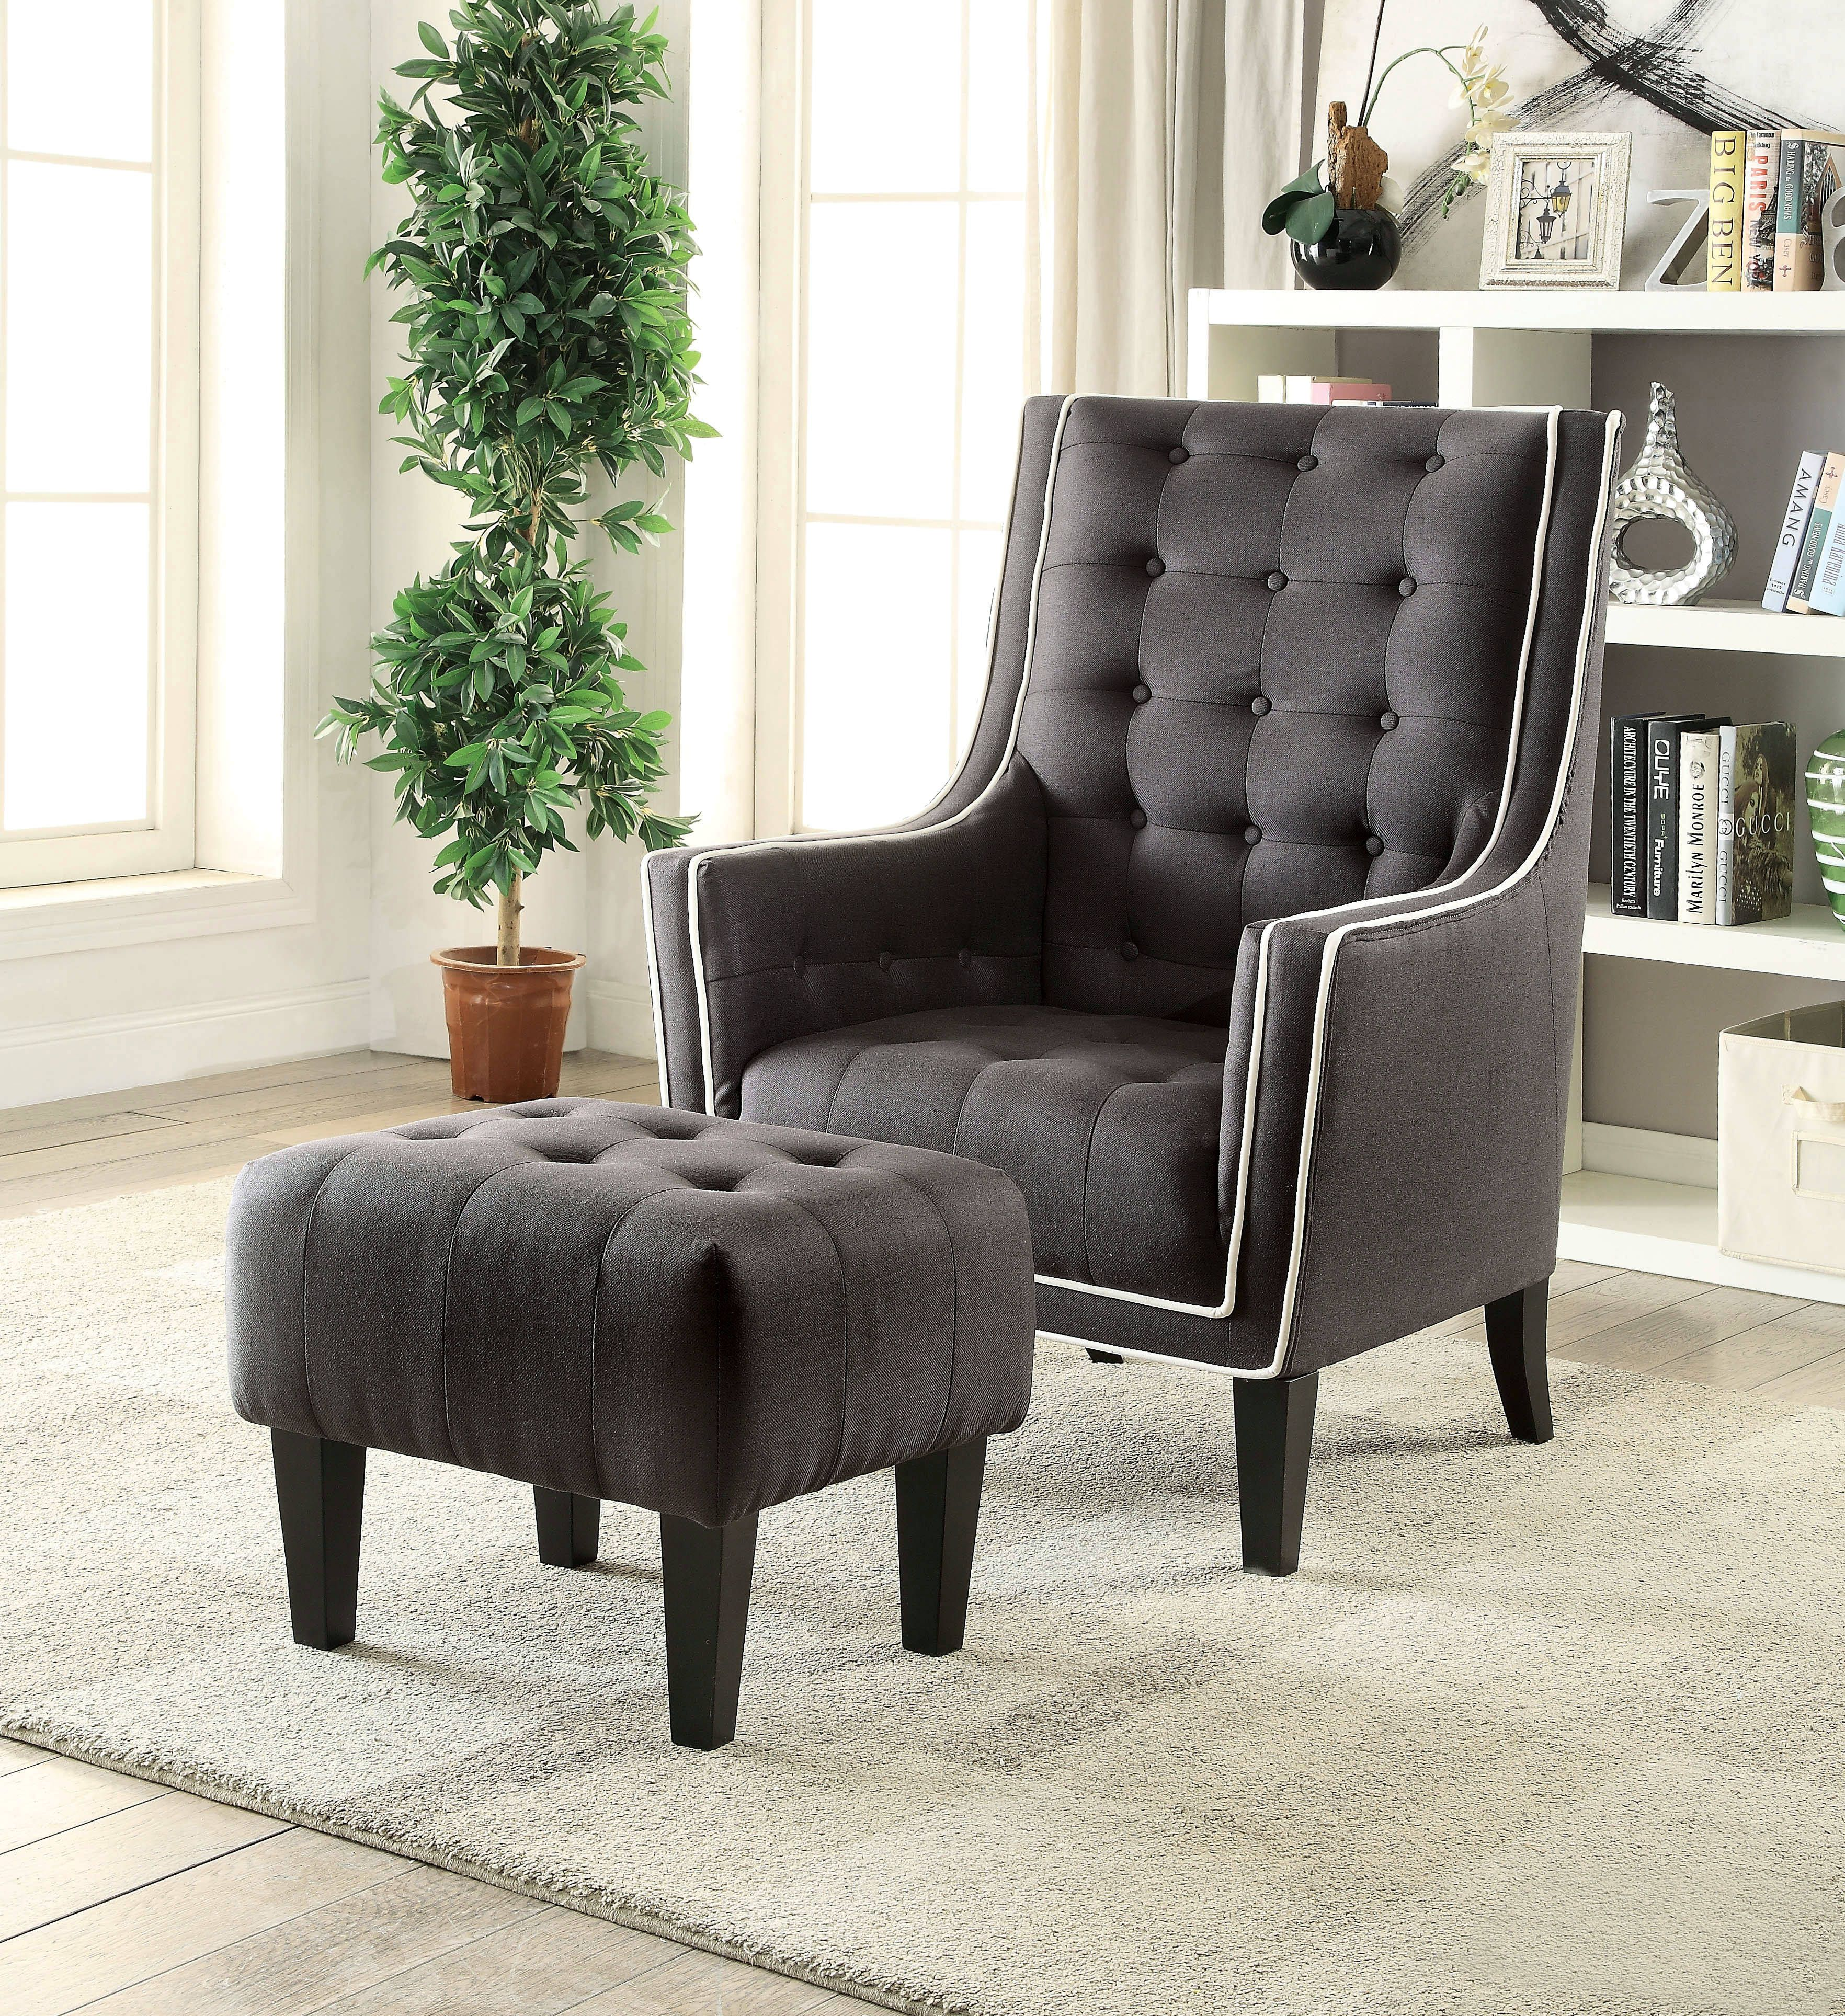 Ophelia Black Button Tufted Fabric Wood Leg Chair and Ottoman Set ...